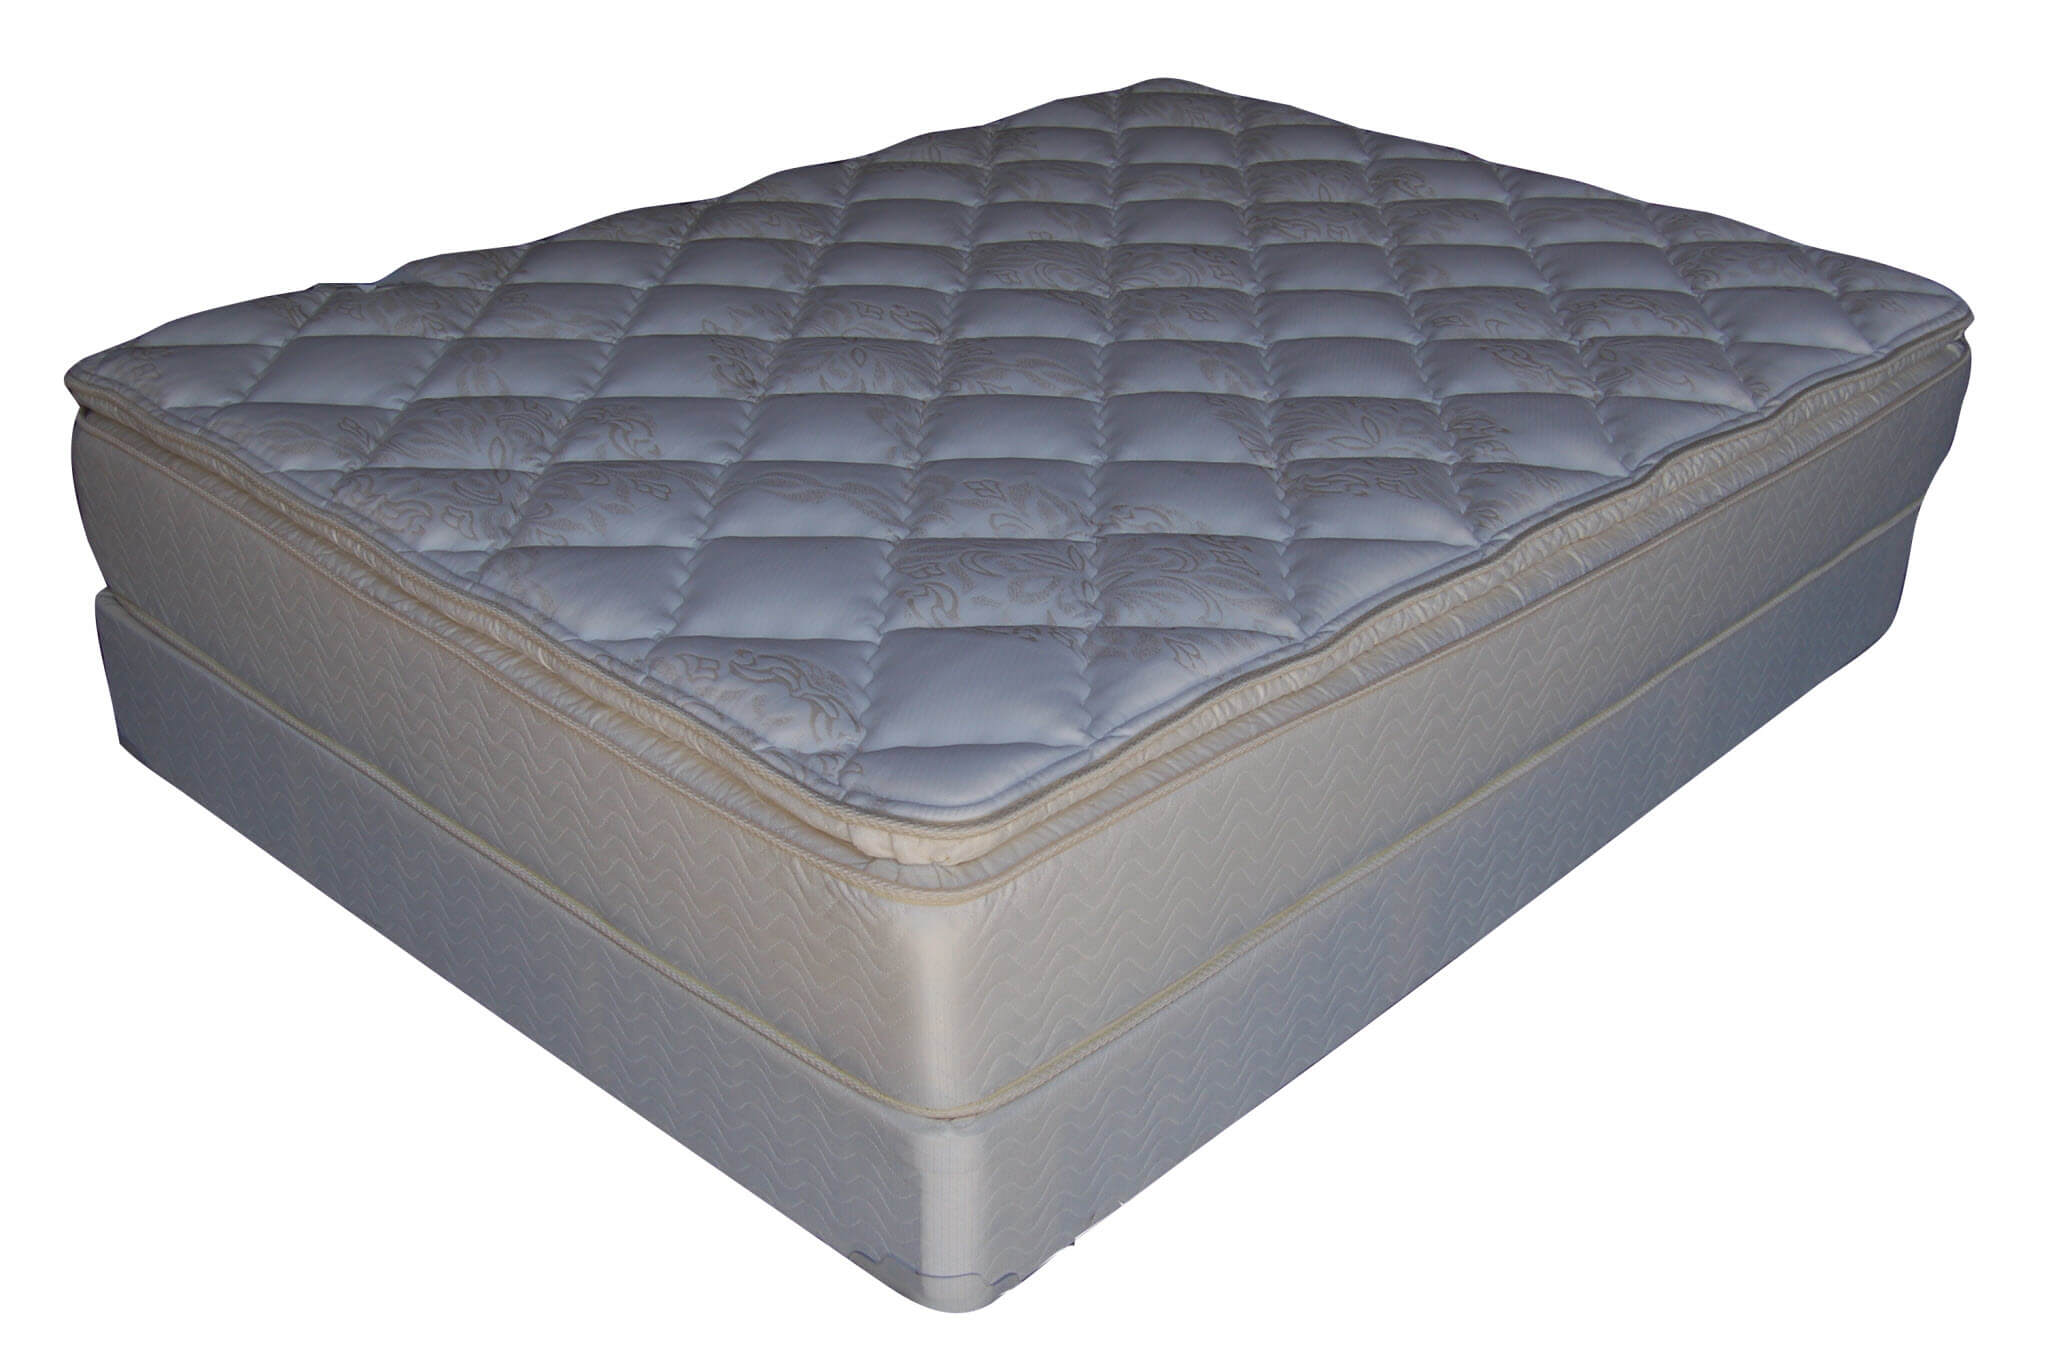 bravo delivery buy s foam mattress pocket memory mattresses top joseph bedworld free pillow spring rt from